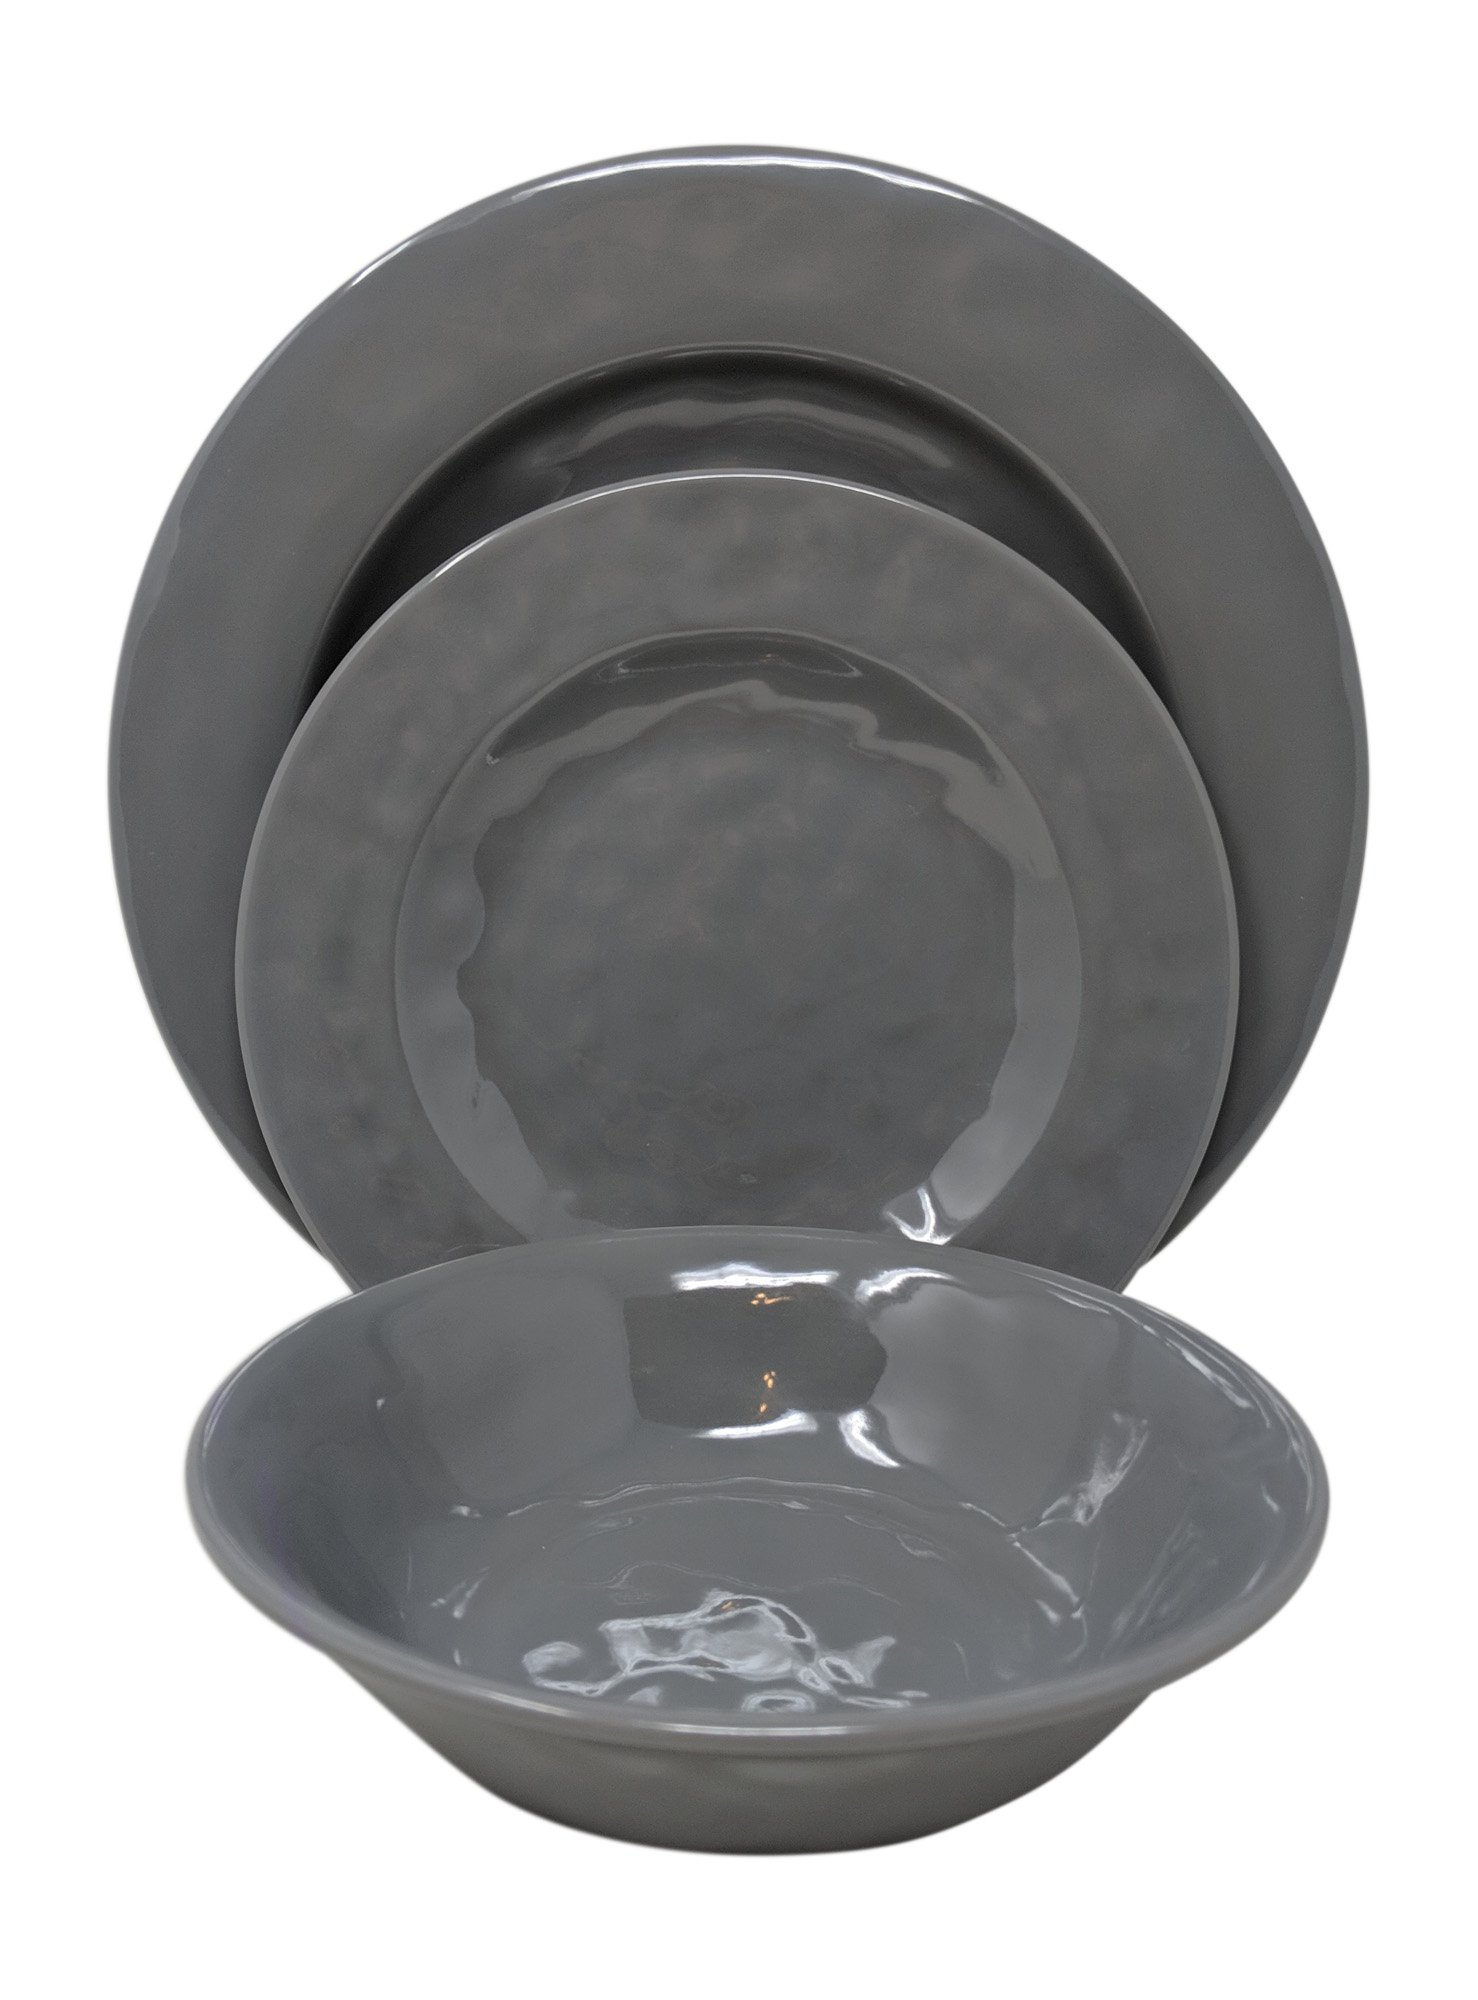 Gianna's Home 12 Piece Solid Color Melamine Dinnerware Set, Service for 4 (Solid Gray)